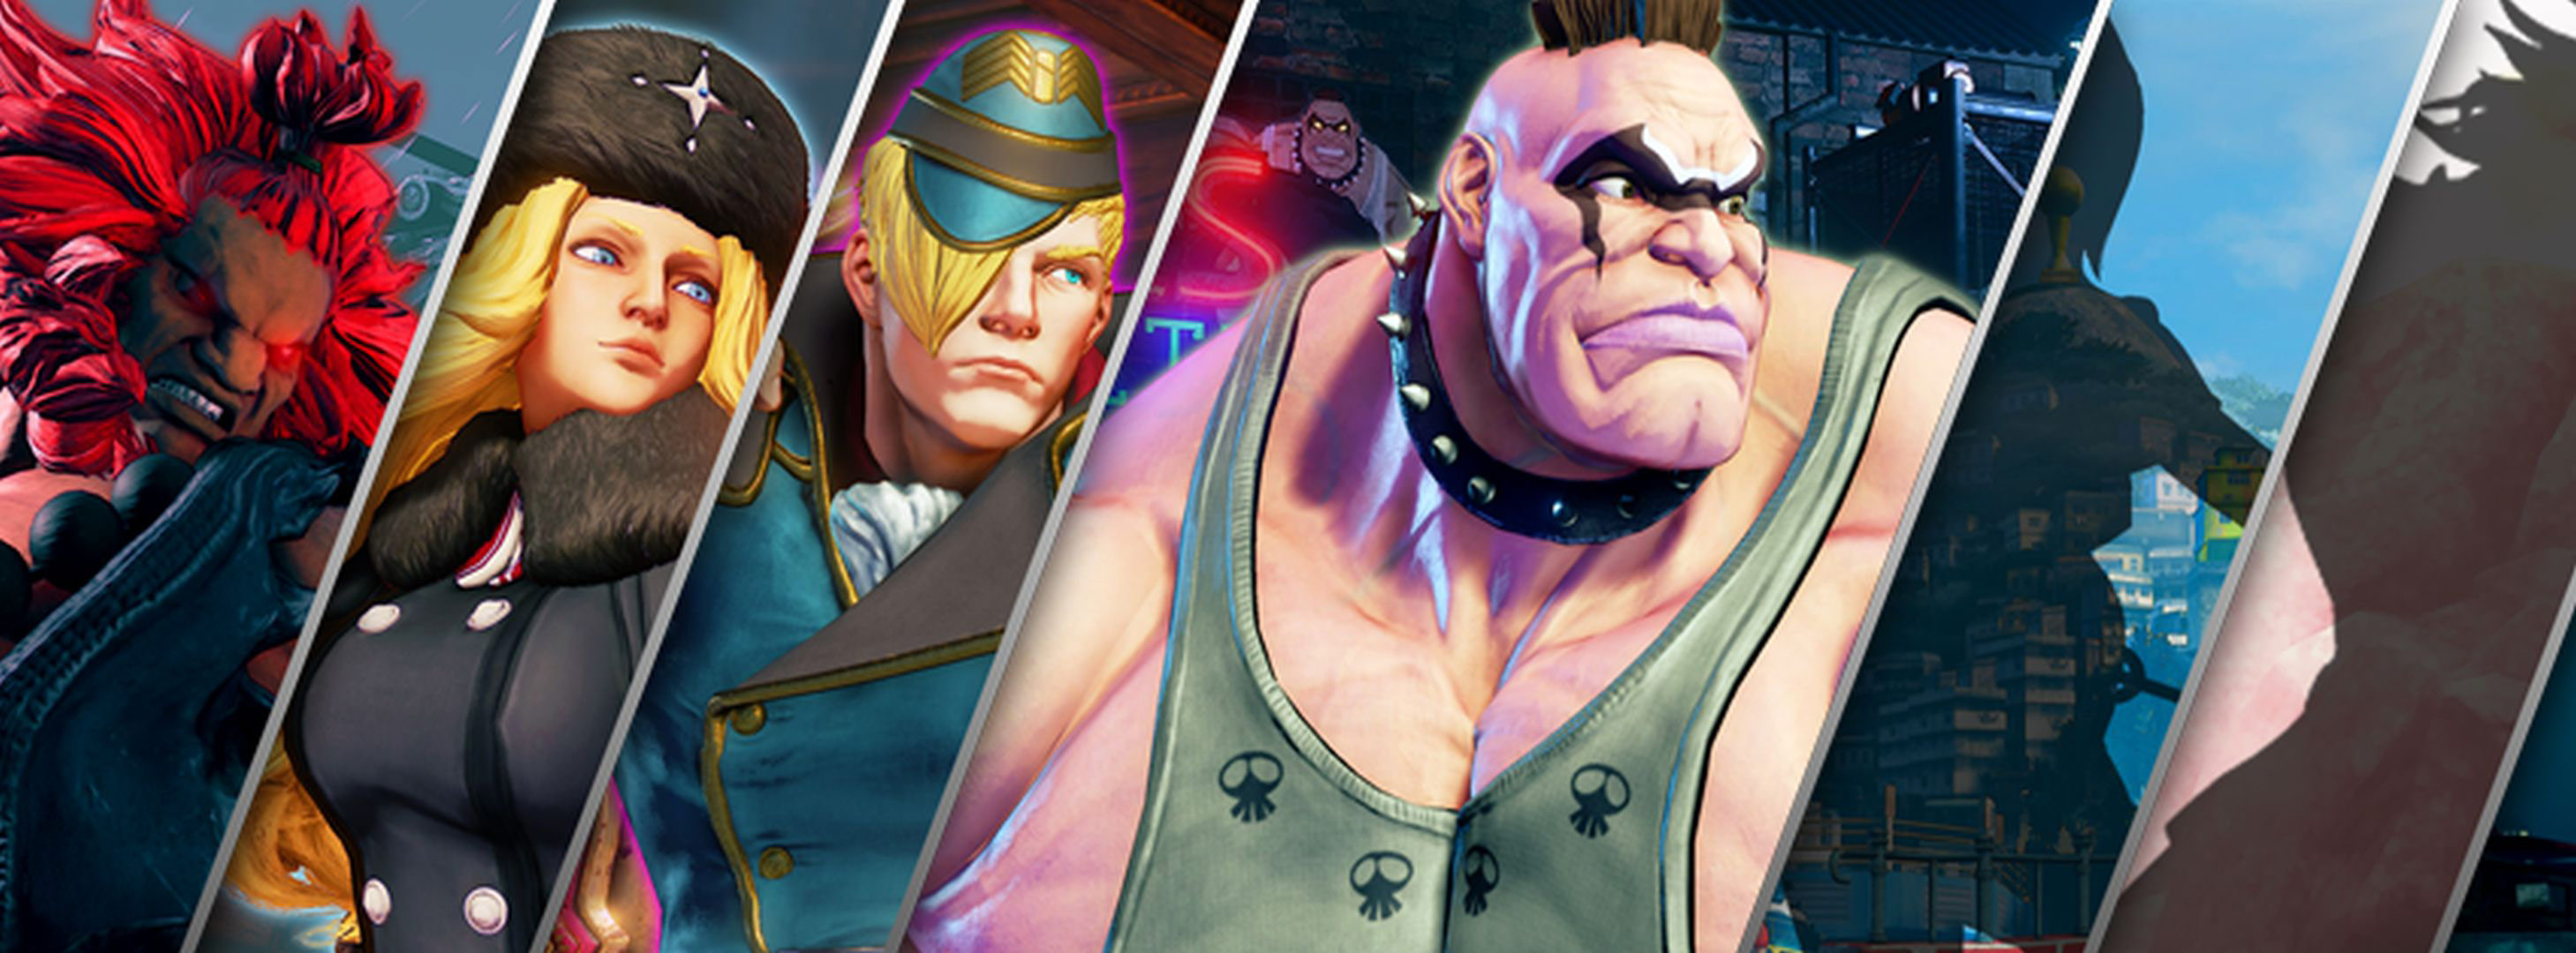 Abigail Street Fighter 5 8 out of 13 image gallery